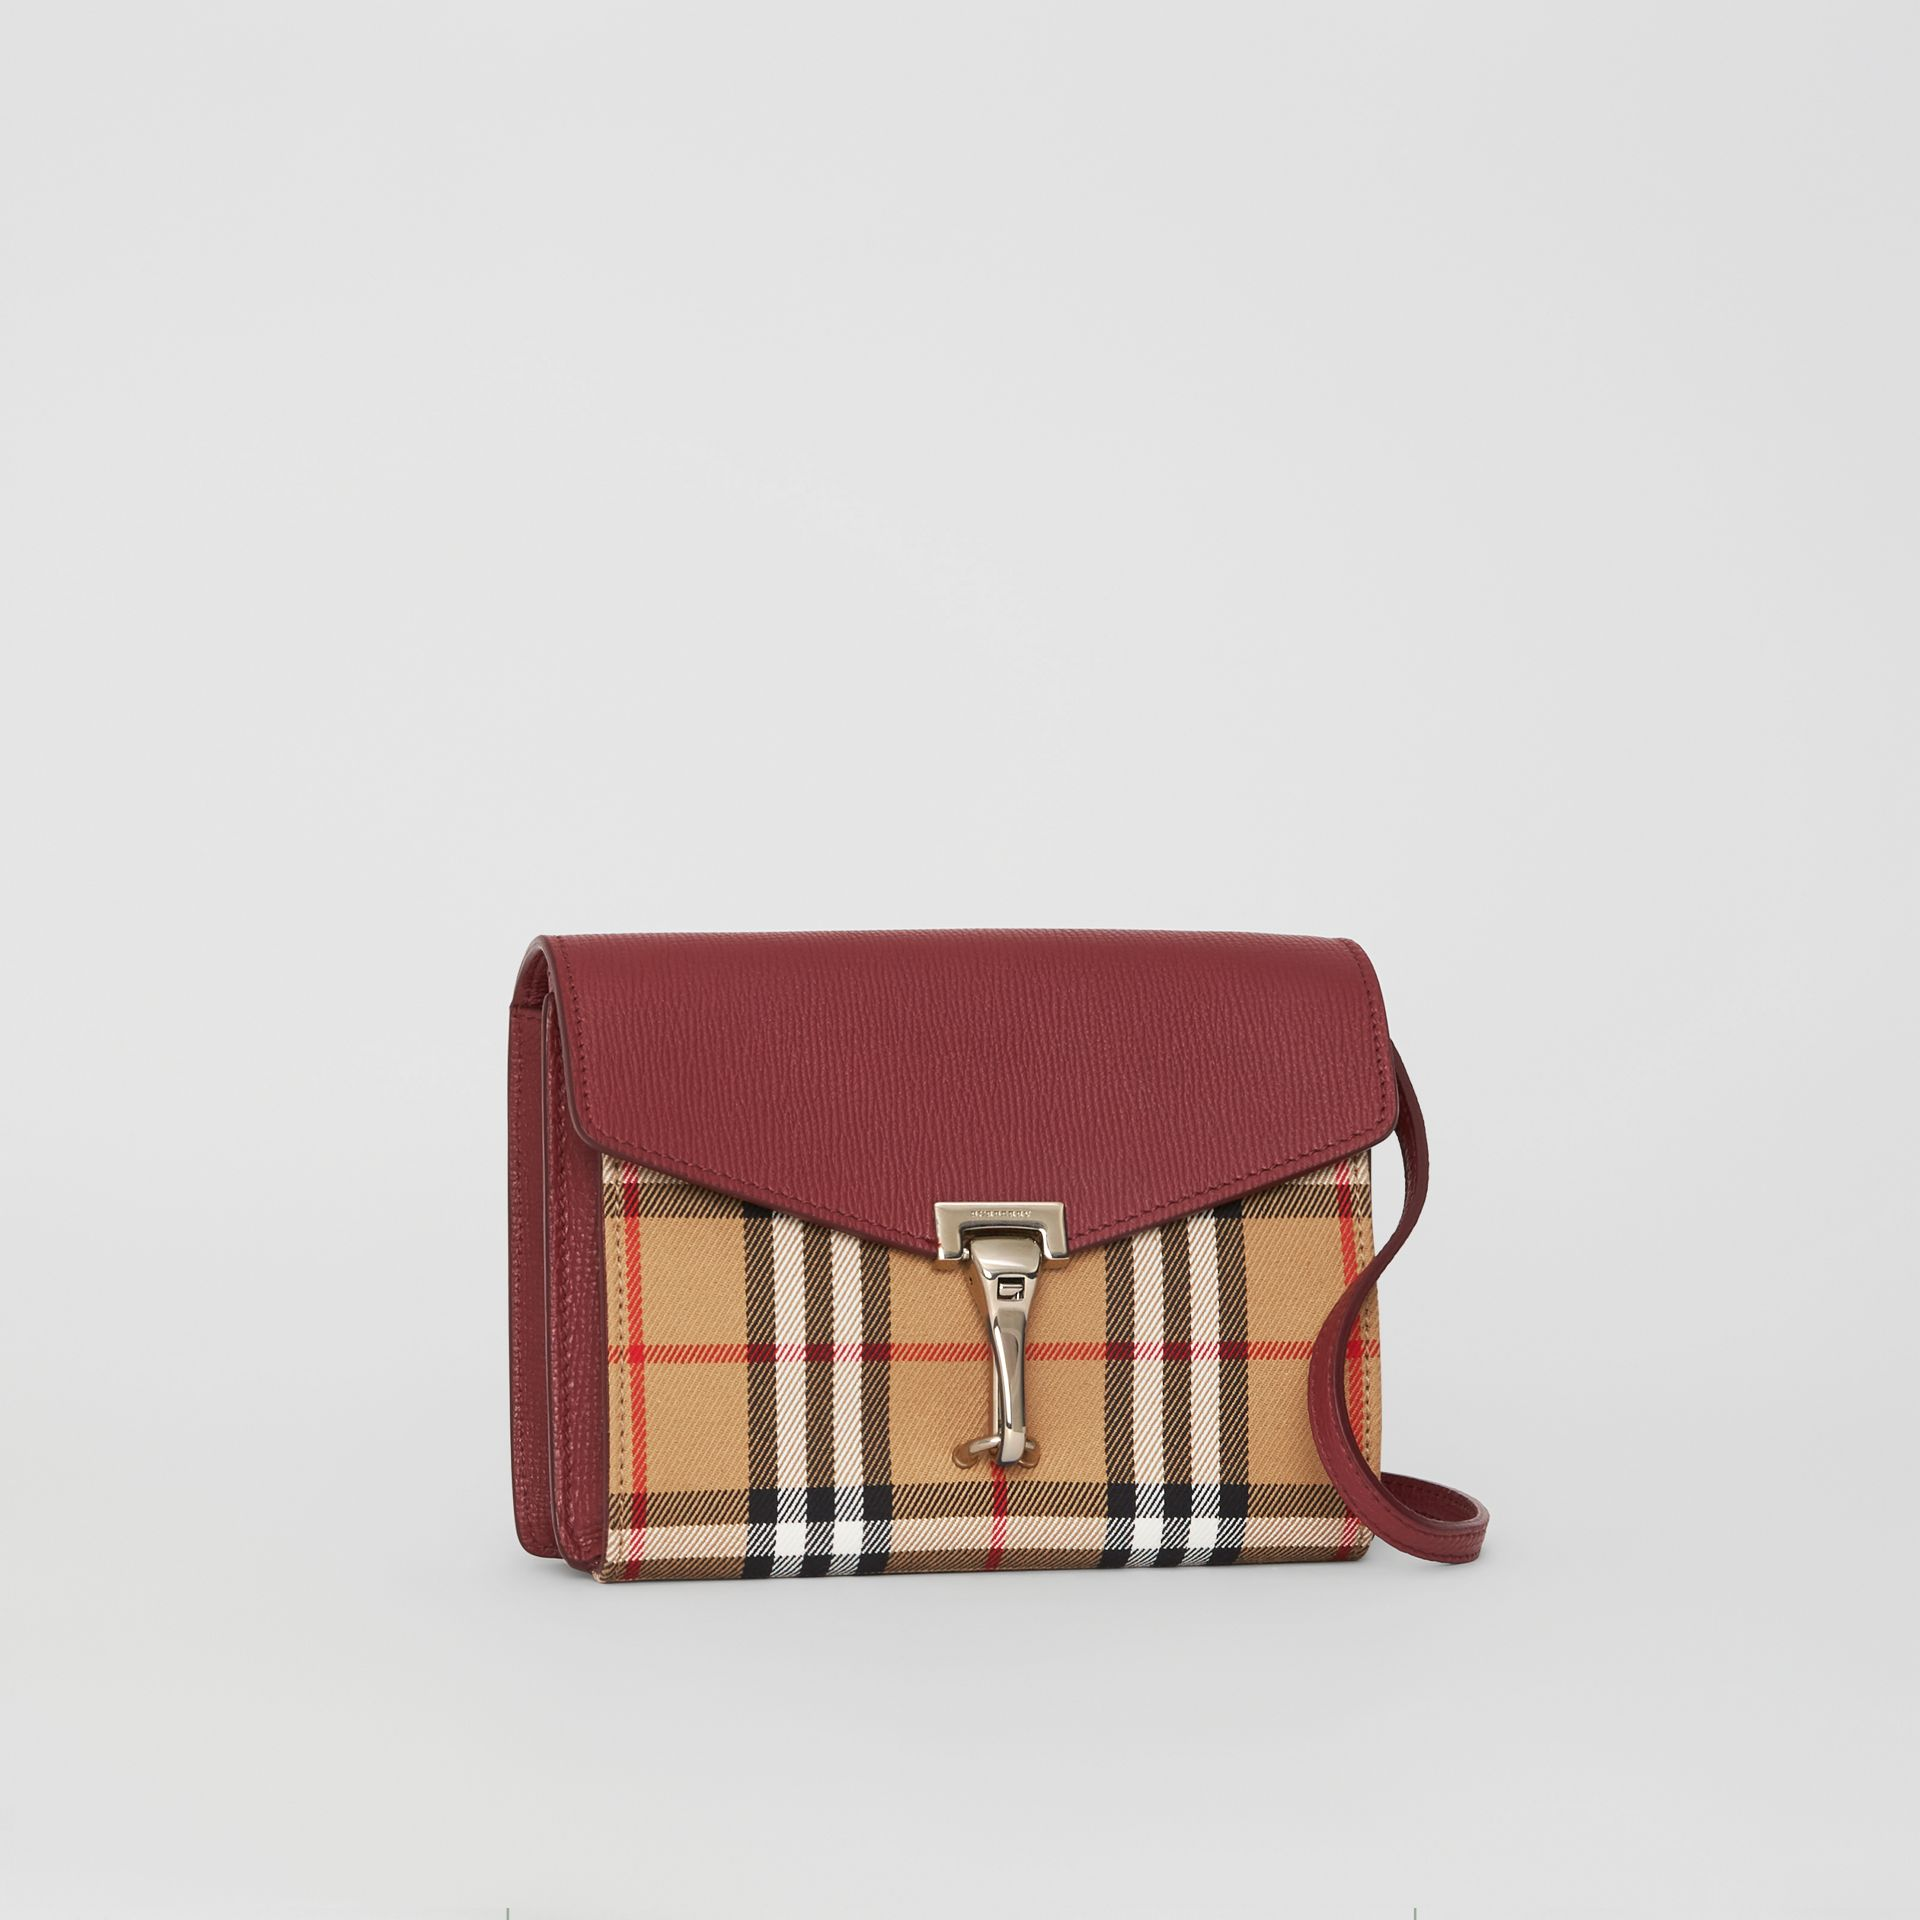 Mini Leather and Vintage Check Crossbody Bag in Crimson - Women | Burberry United Kingdom - gallery image 5